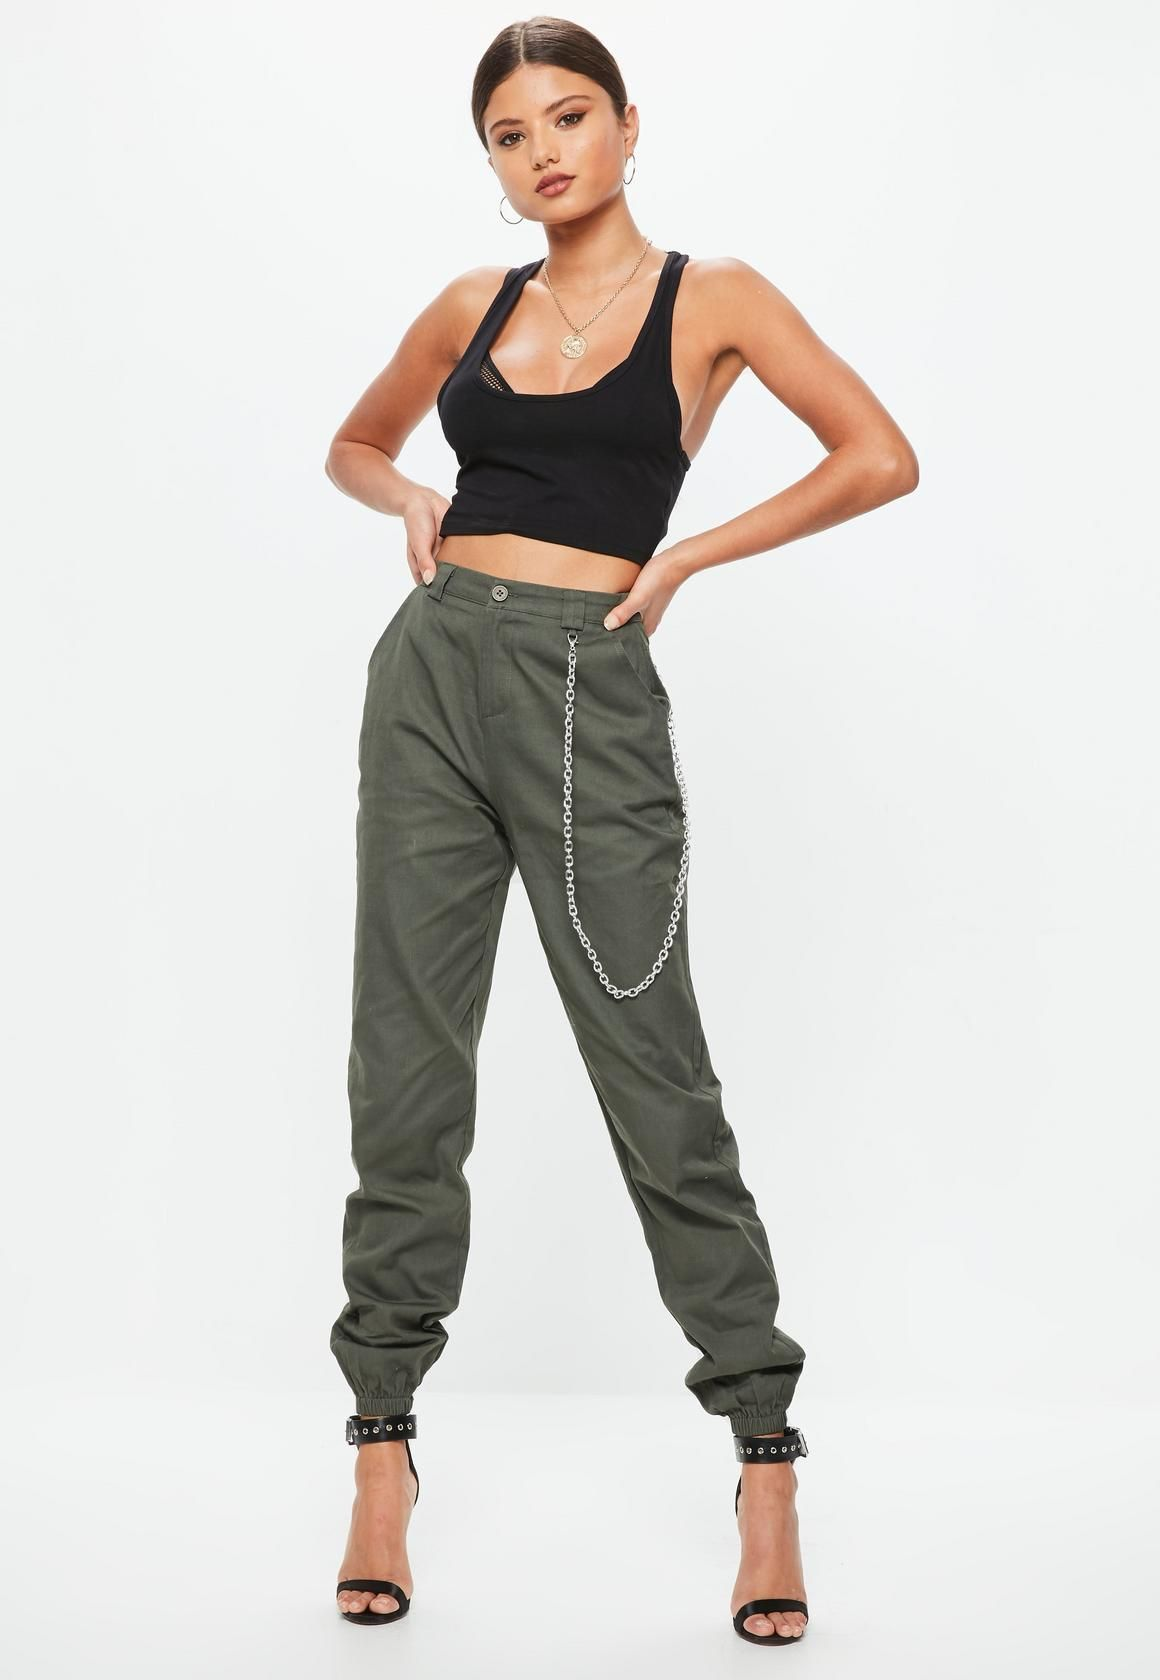 81f677aab0542 cargo pants in khaki hue with chain detailing. | how to style/what ...